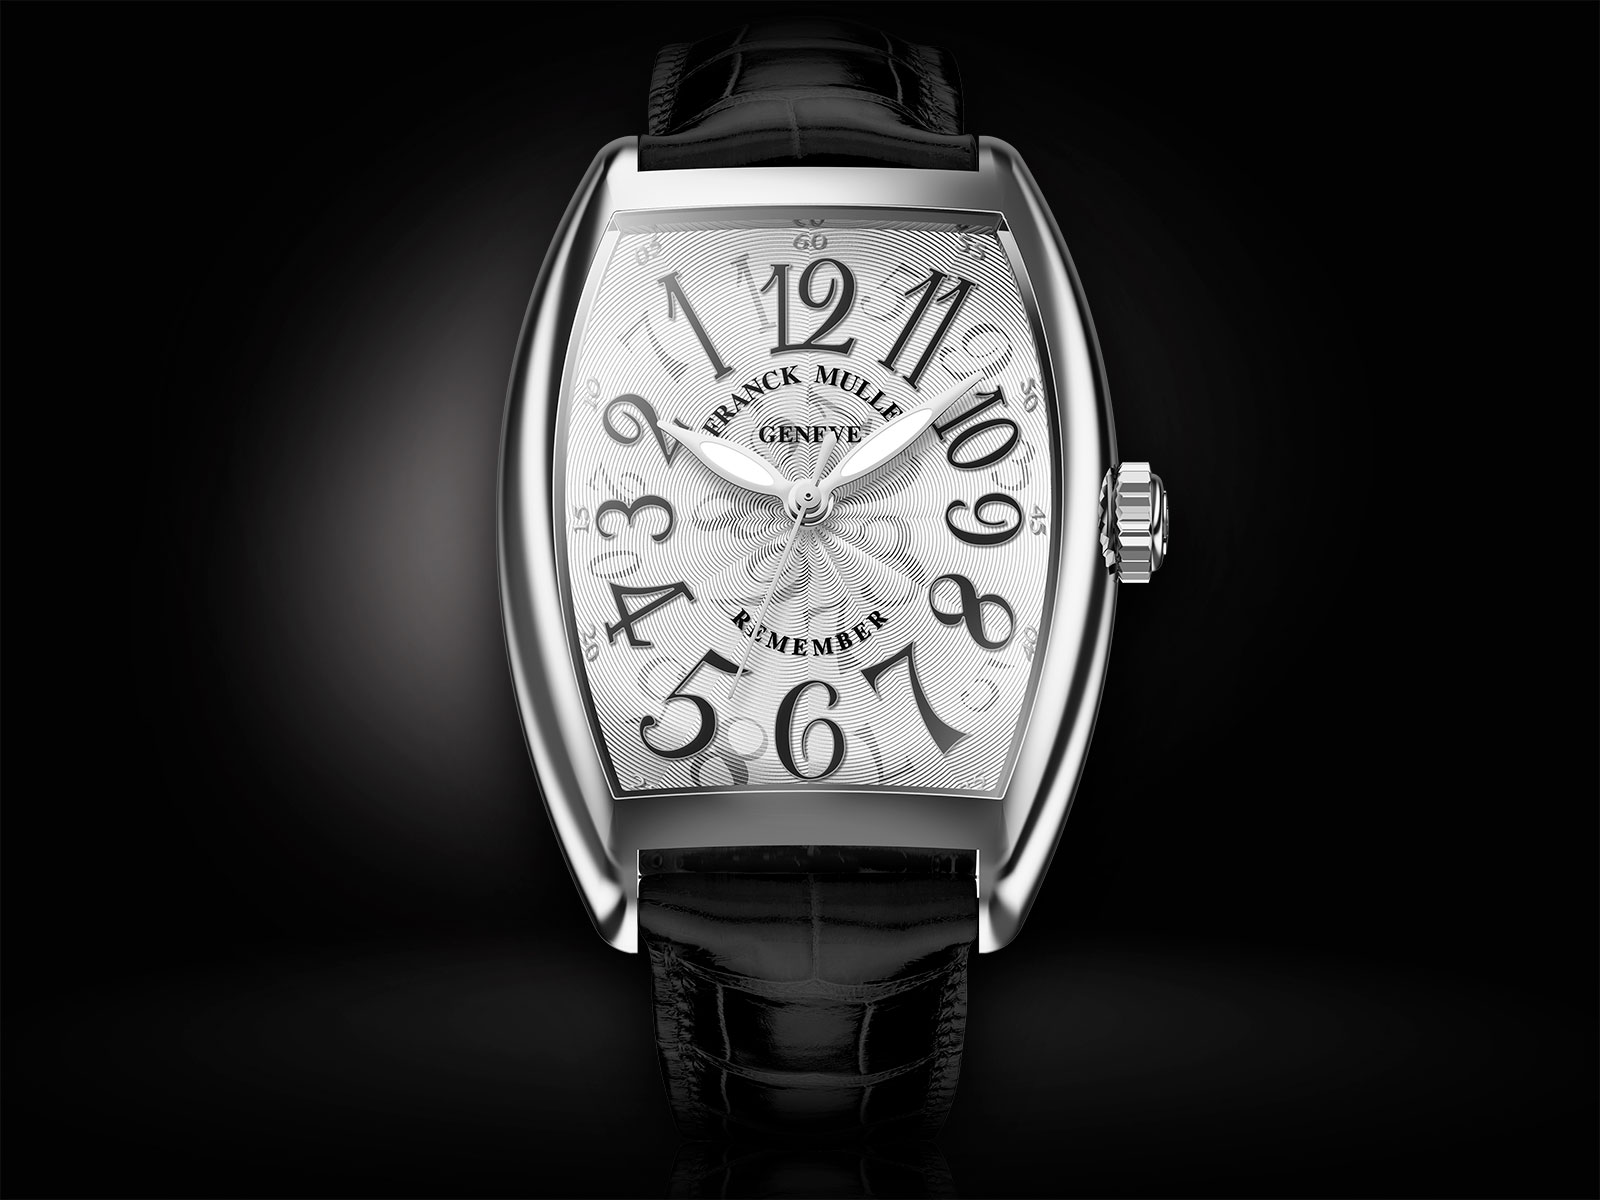 Franck Muller Remember steel 2